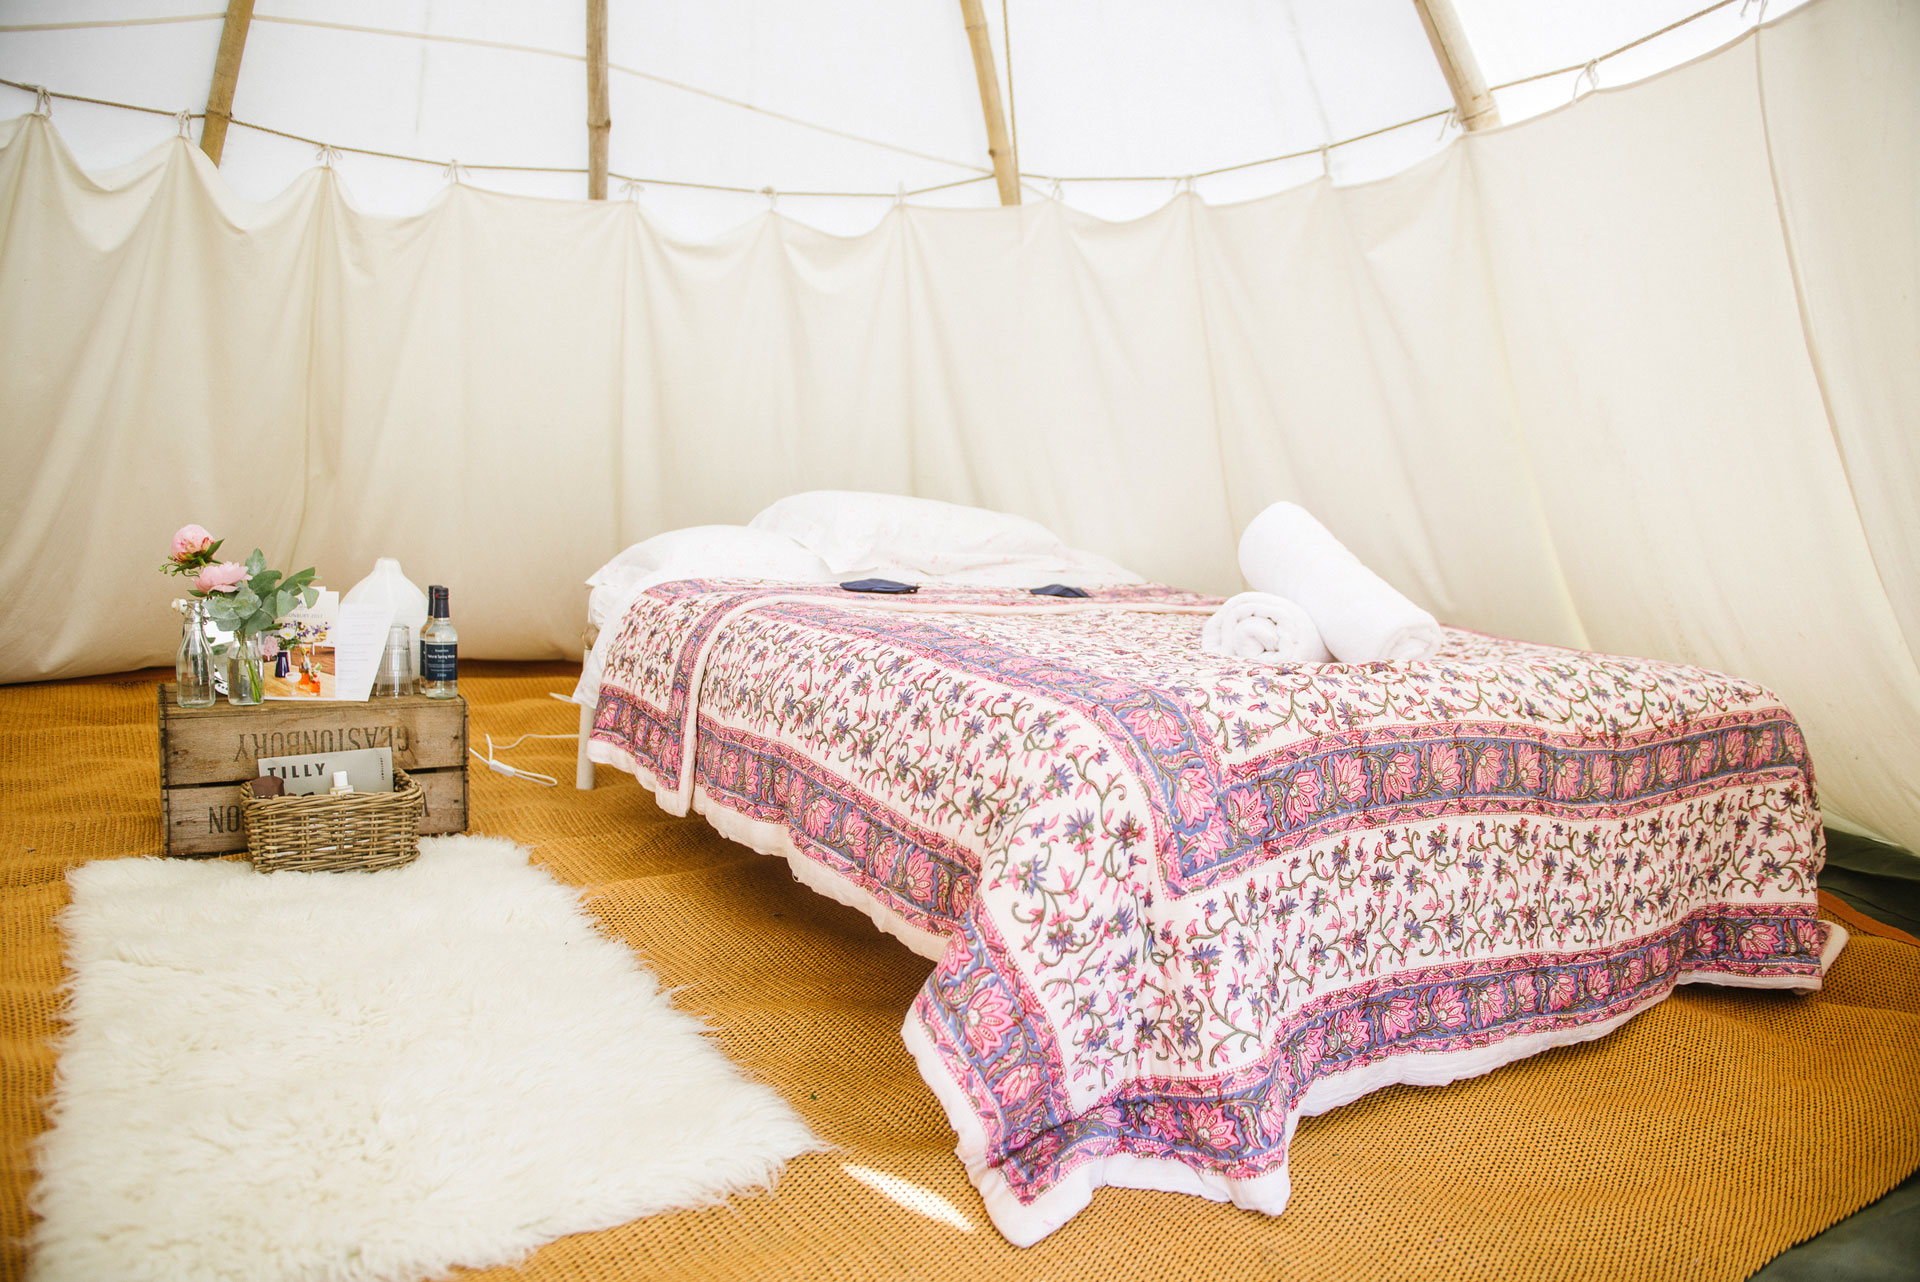 Majestic tipi for two with pink quilt